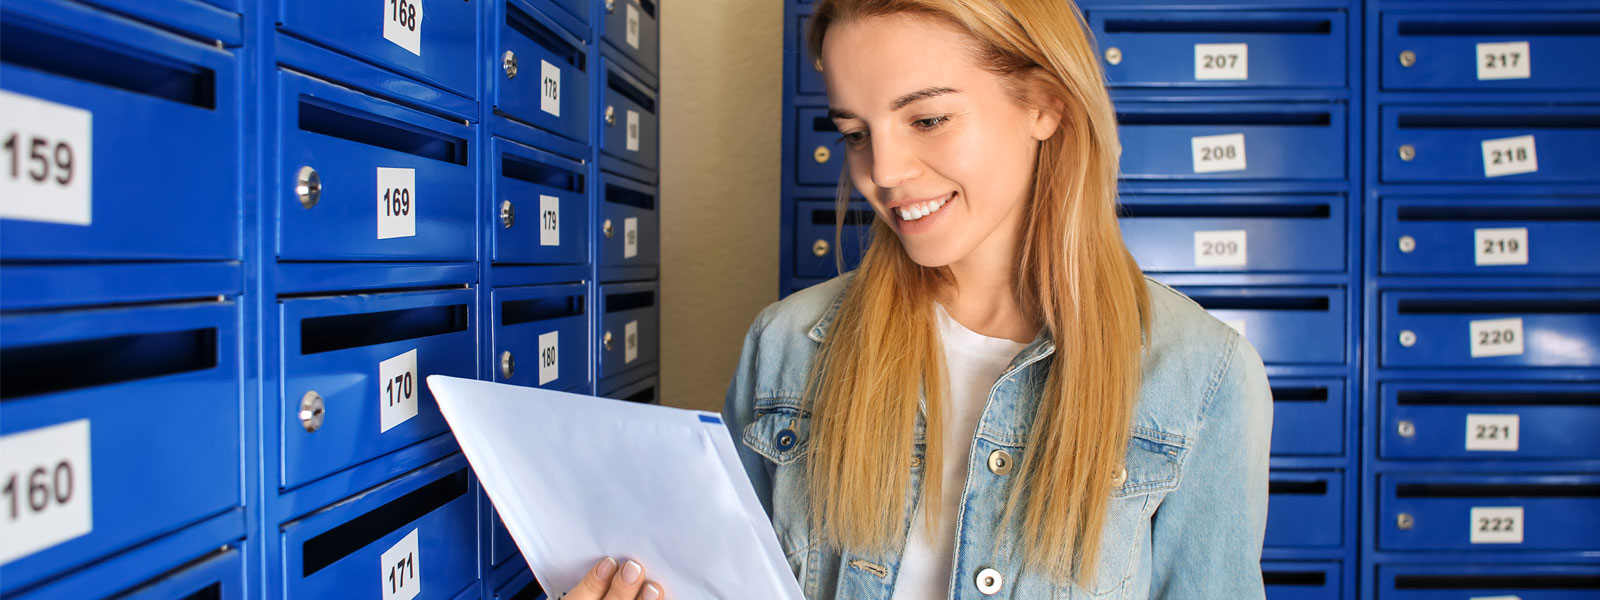 Innovation & interaction - The customer relationship with direct mail and door drop